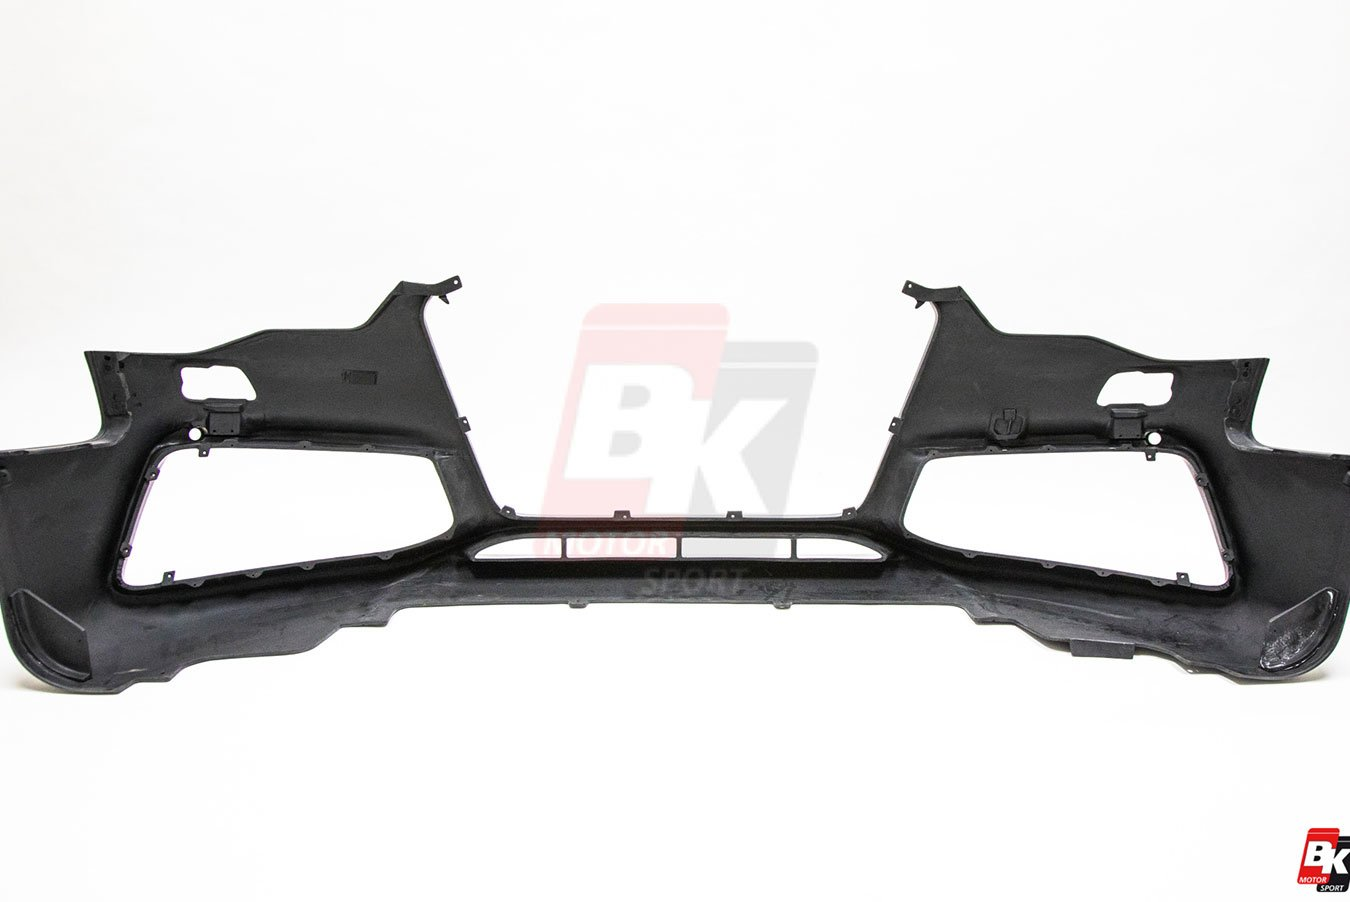 Caractere Front Bumper for Cars with Parking Sensors, Headlight Washers and Foglights, fits Audi A5 B8.5